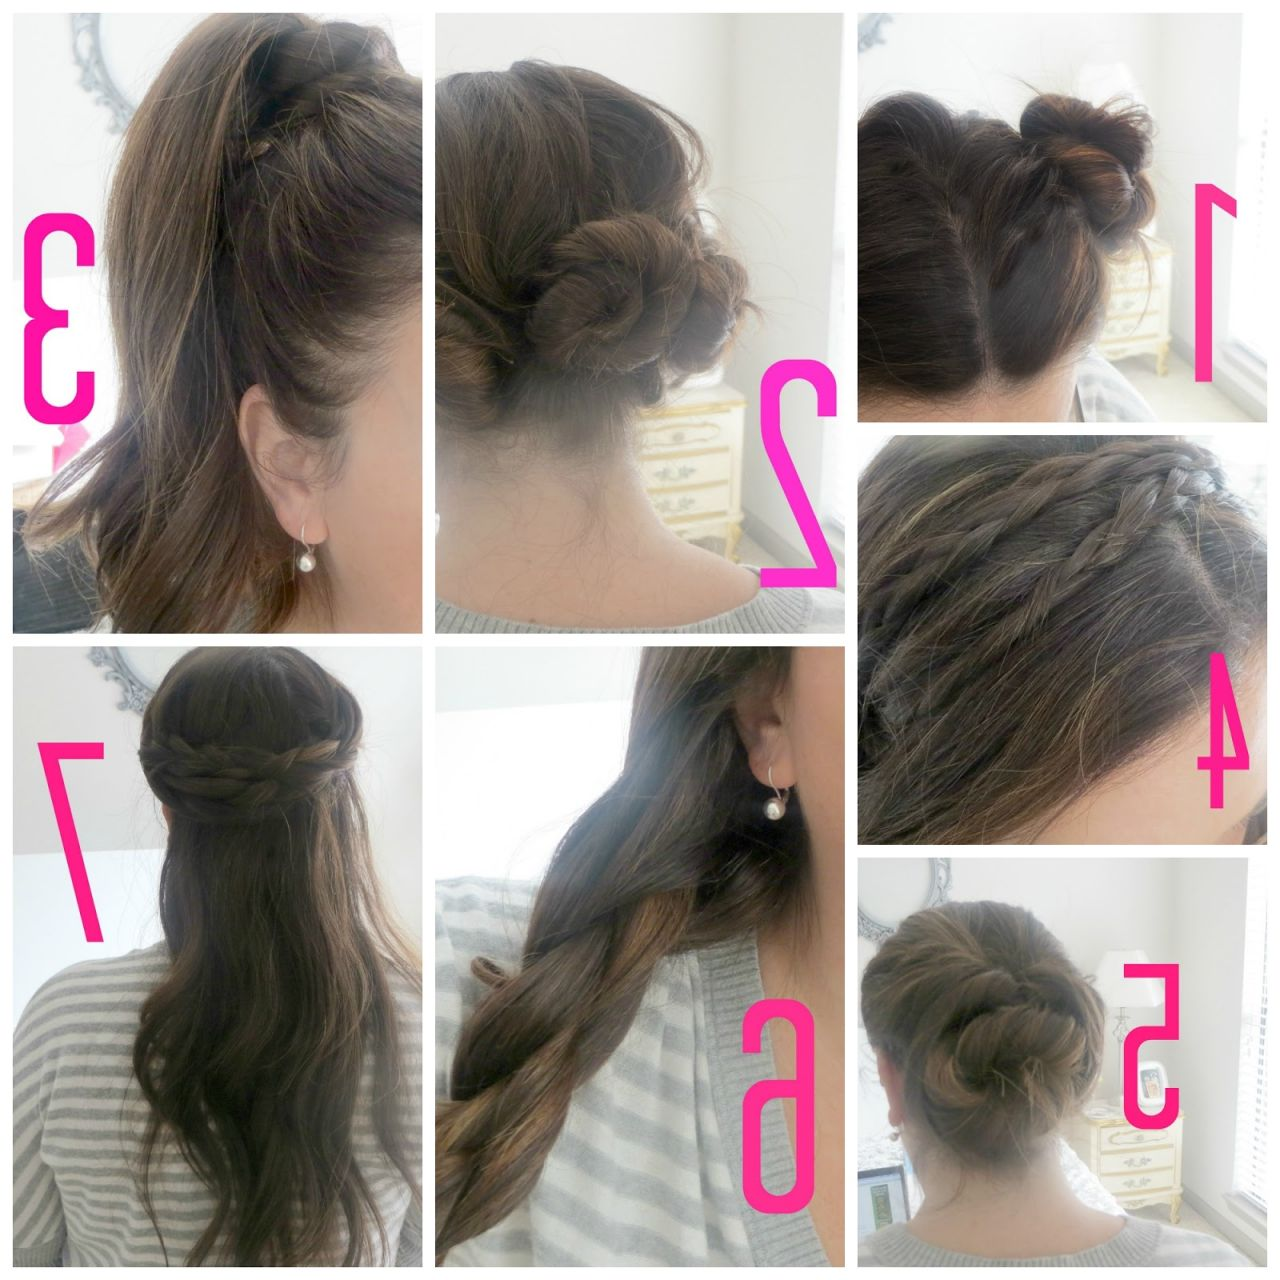 simple hairstyles step by step for long hair   top model